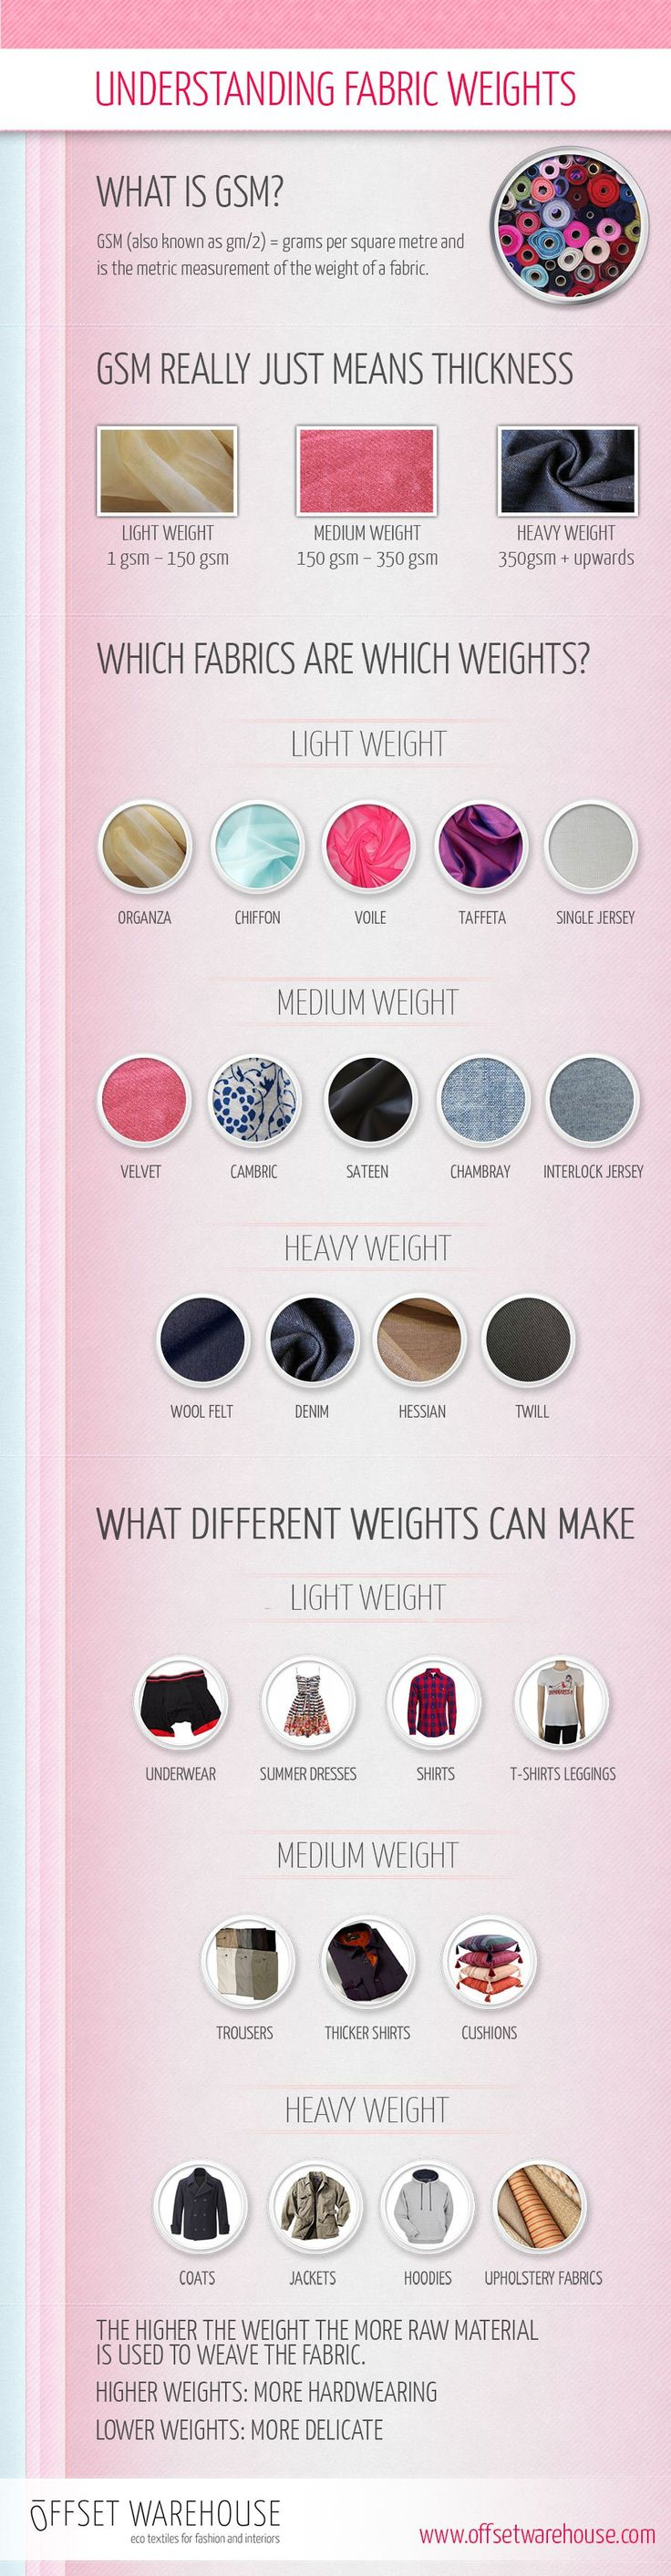 Understanding Fabric Weights